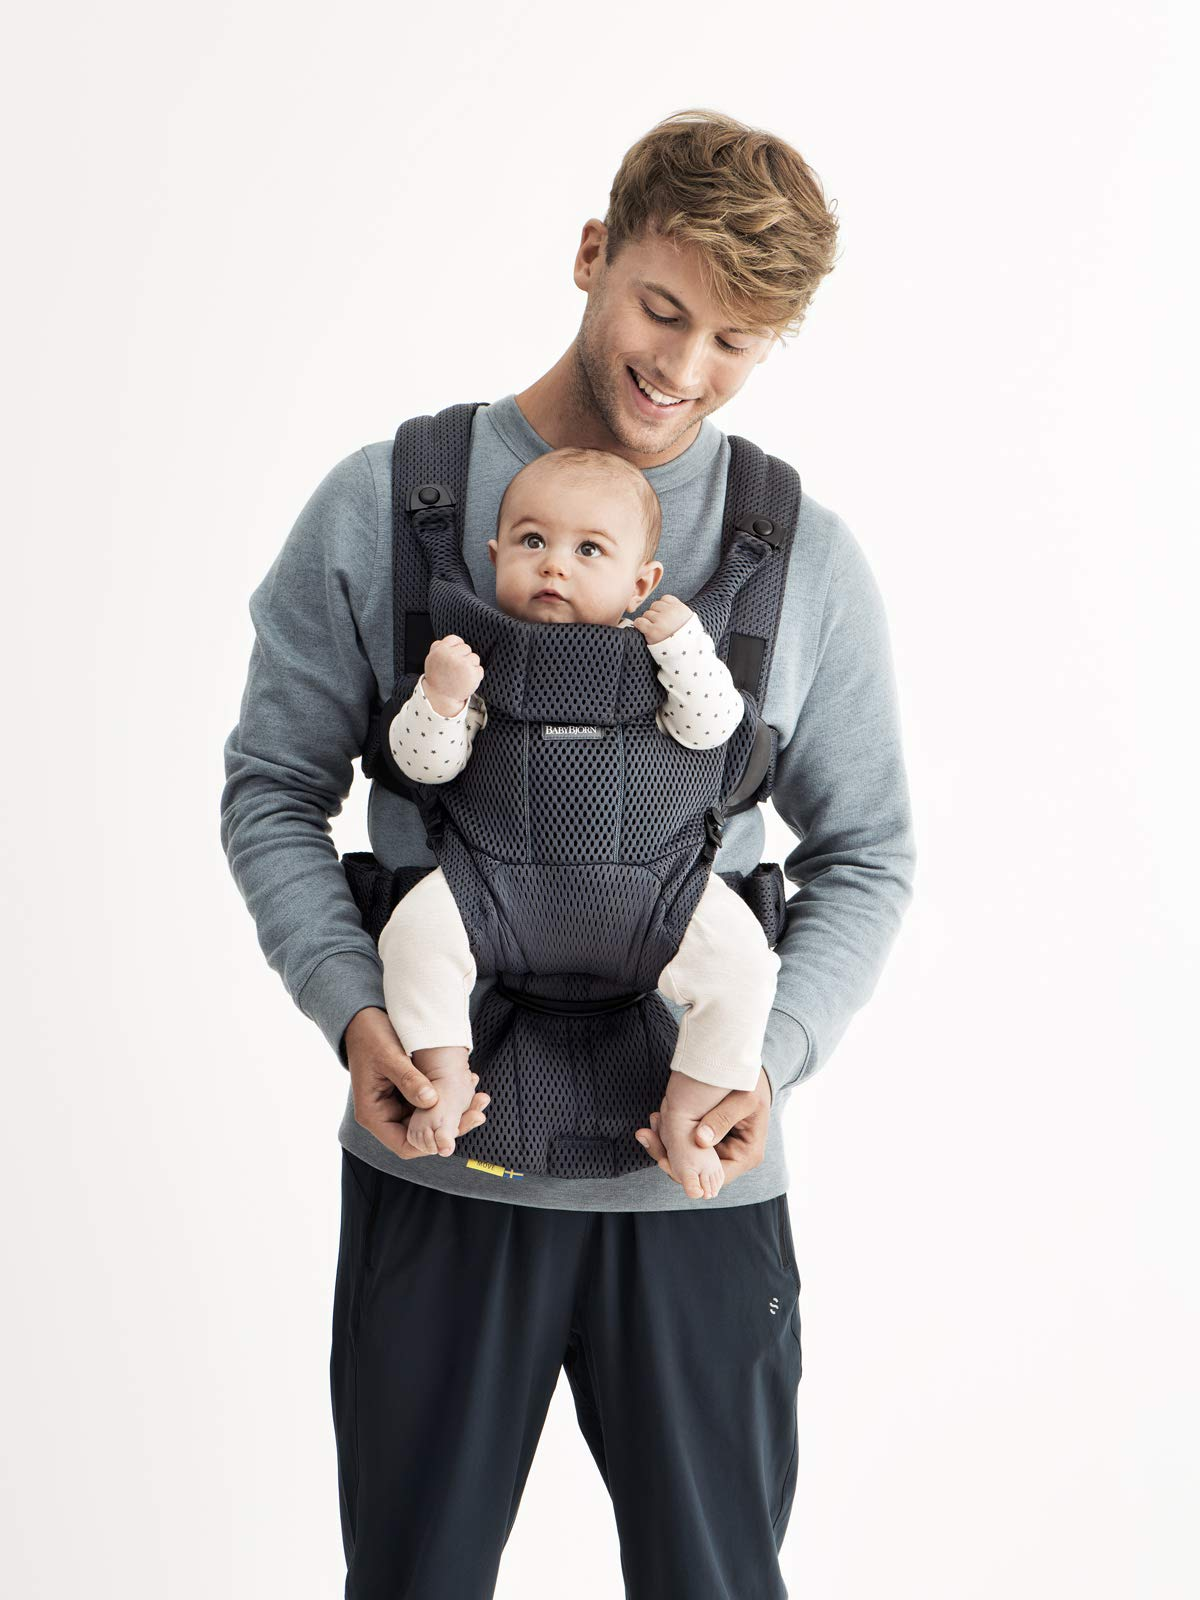 BABYBJÖRN Baby Carrier Move, 3D Mesh, Anthracite Baby Bjorn Excellent comfort with built-in back support and waist belt Easy to put on and take off Soft and airy design in cool 3D mesh 4